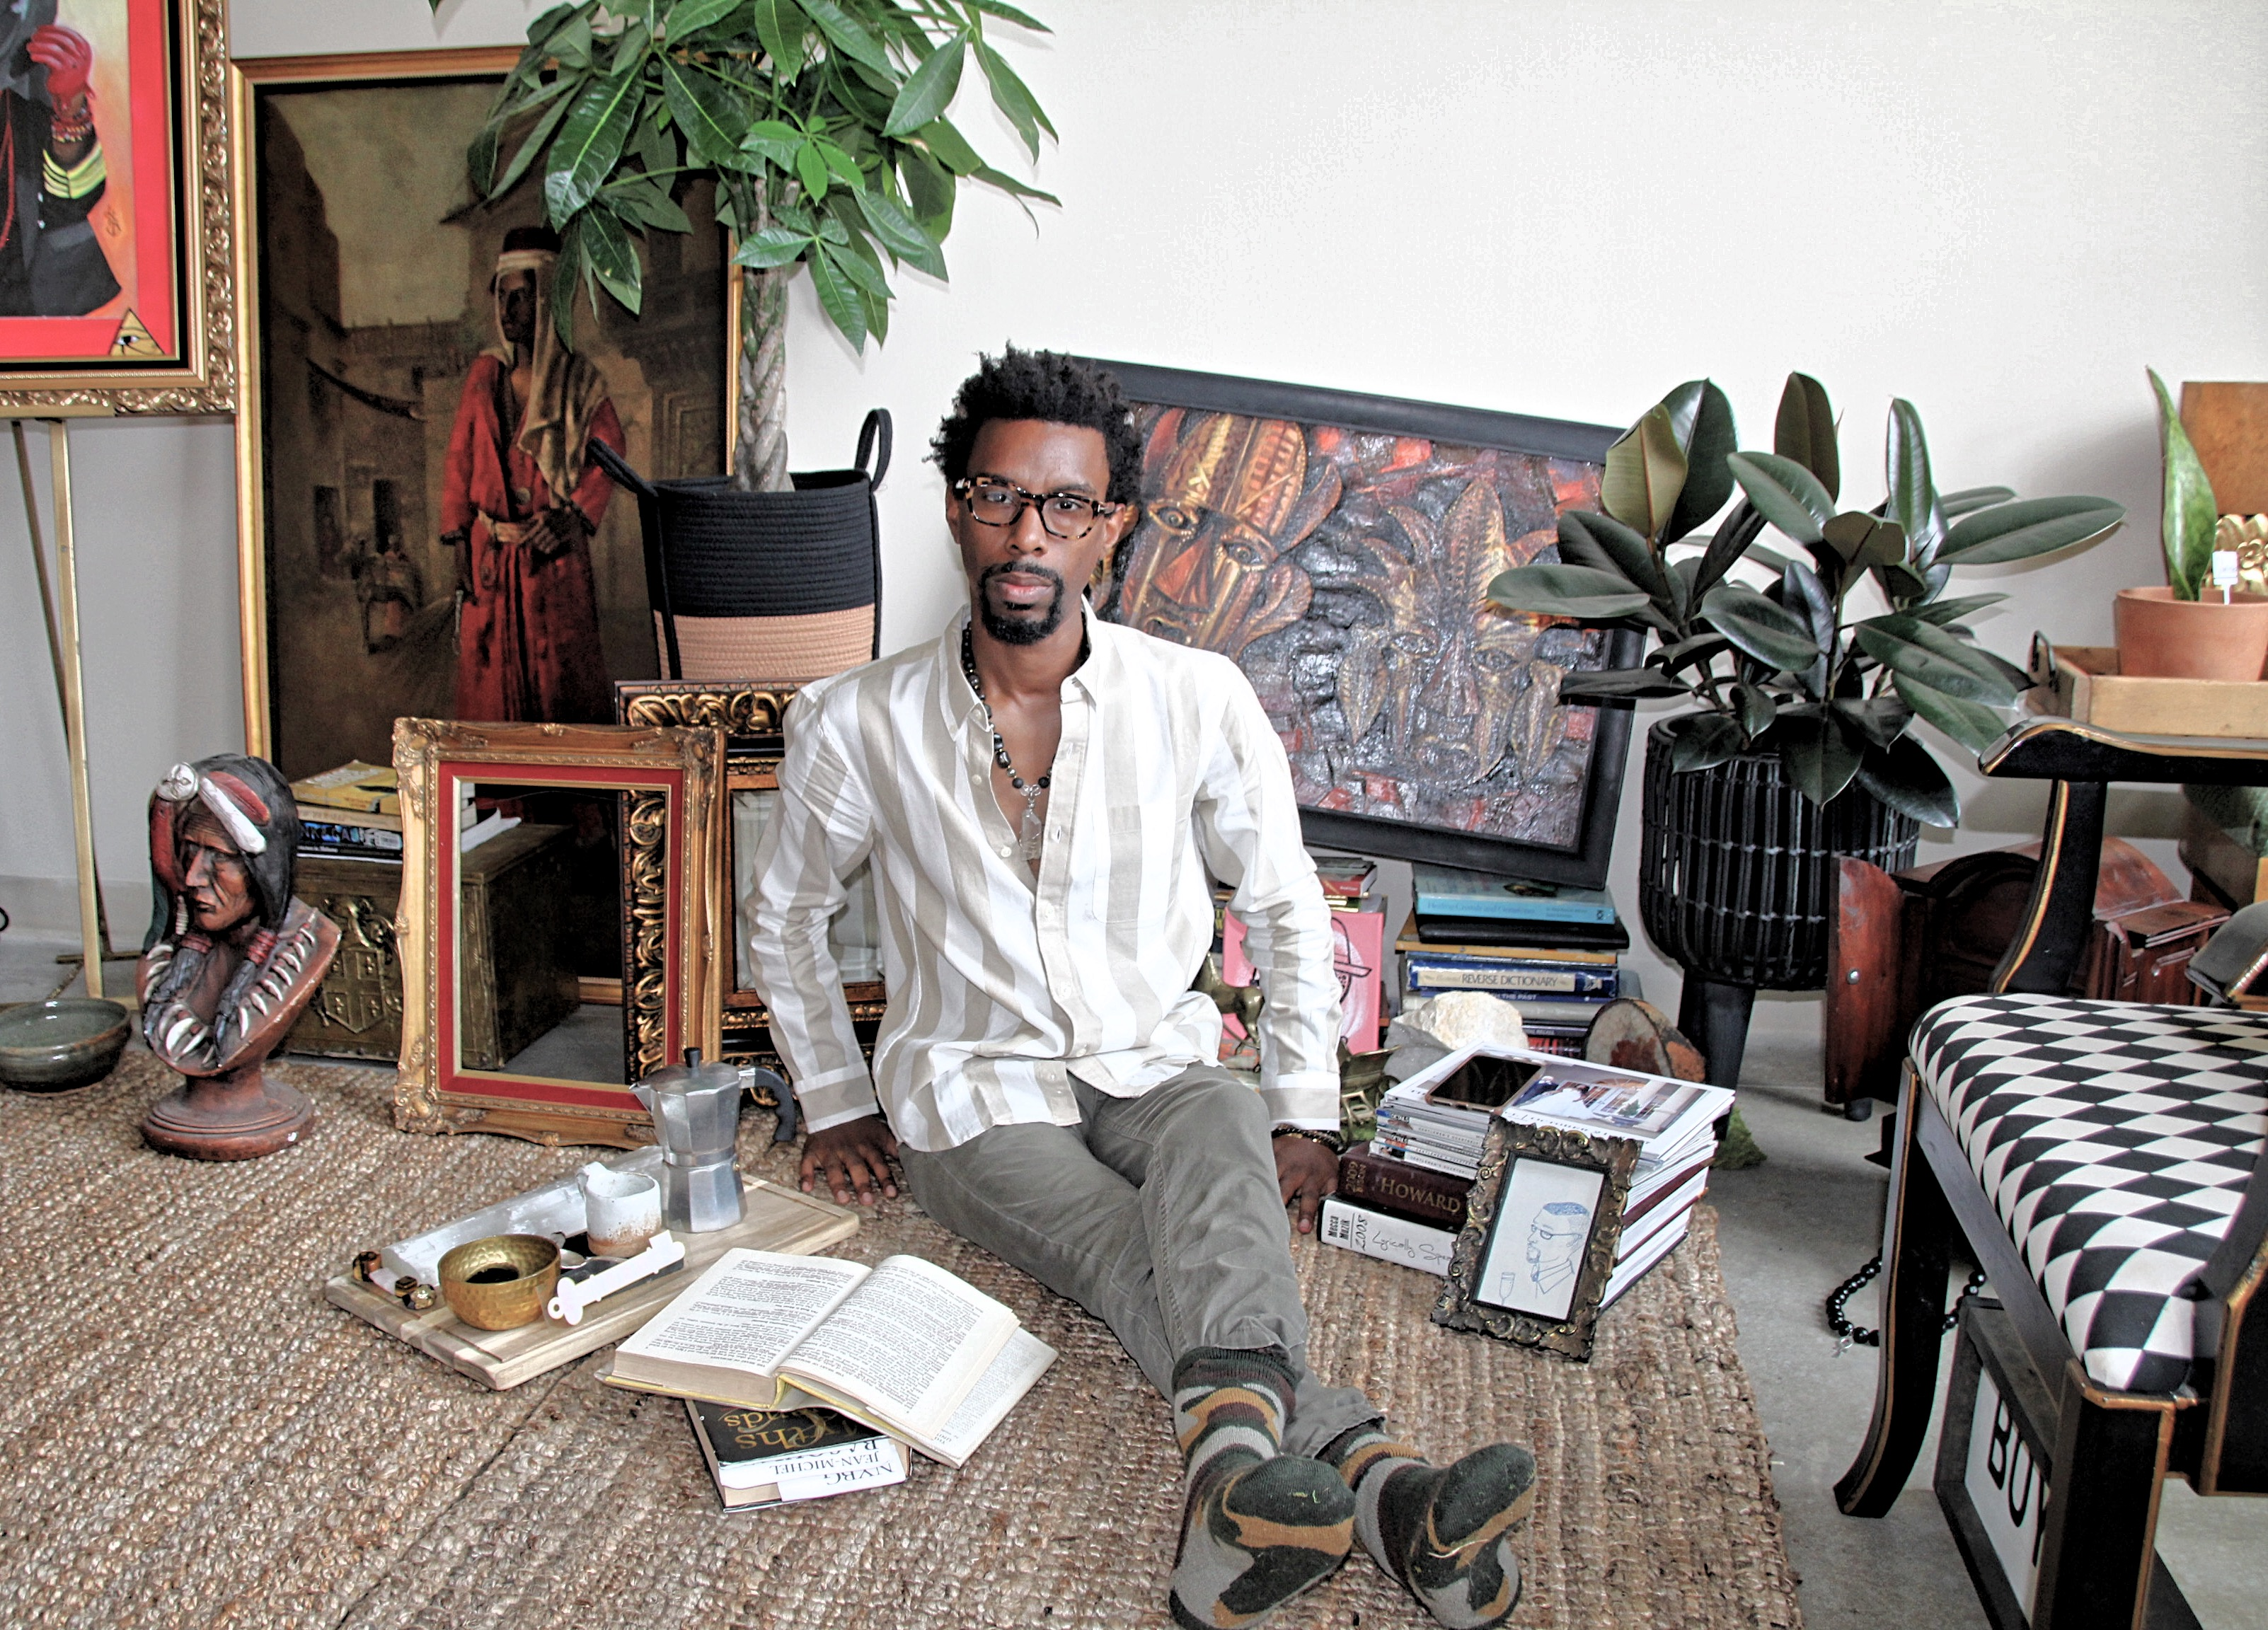 boybeads-new-york-sebastian-mitchell-tarver-sitting-in-loft-reading-books-with-coffee-and-crystals-on-jute-rug-african-american-black-man-sitting-on-rug-image.jpg